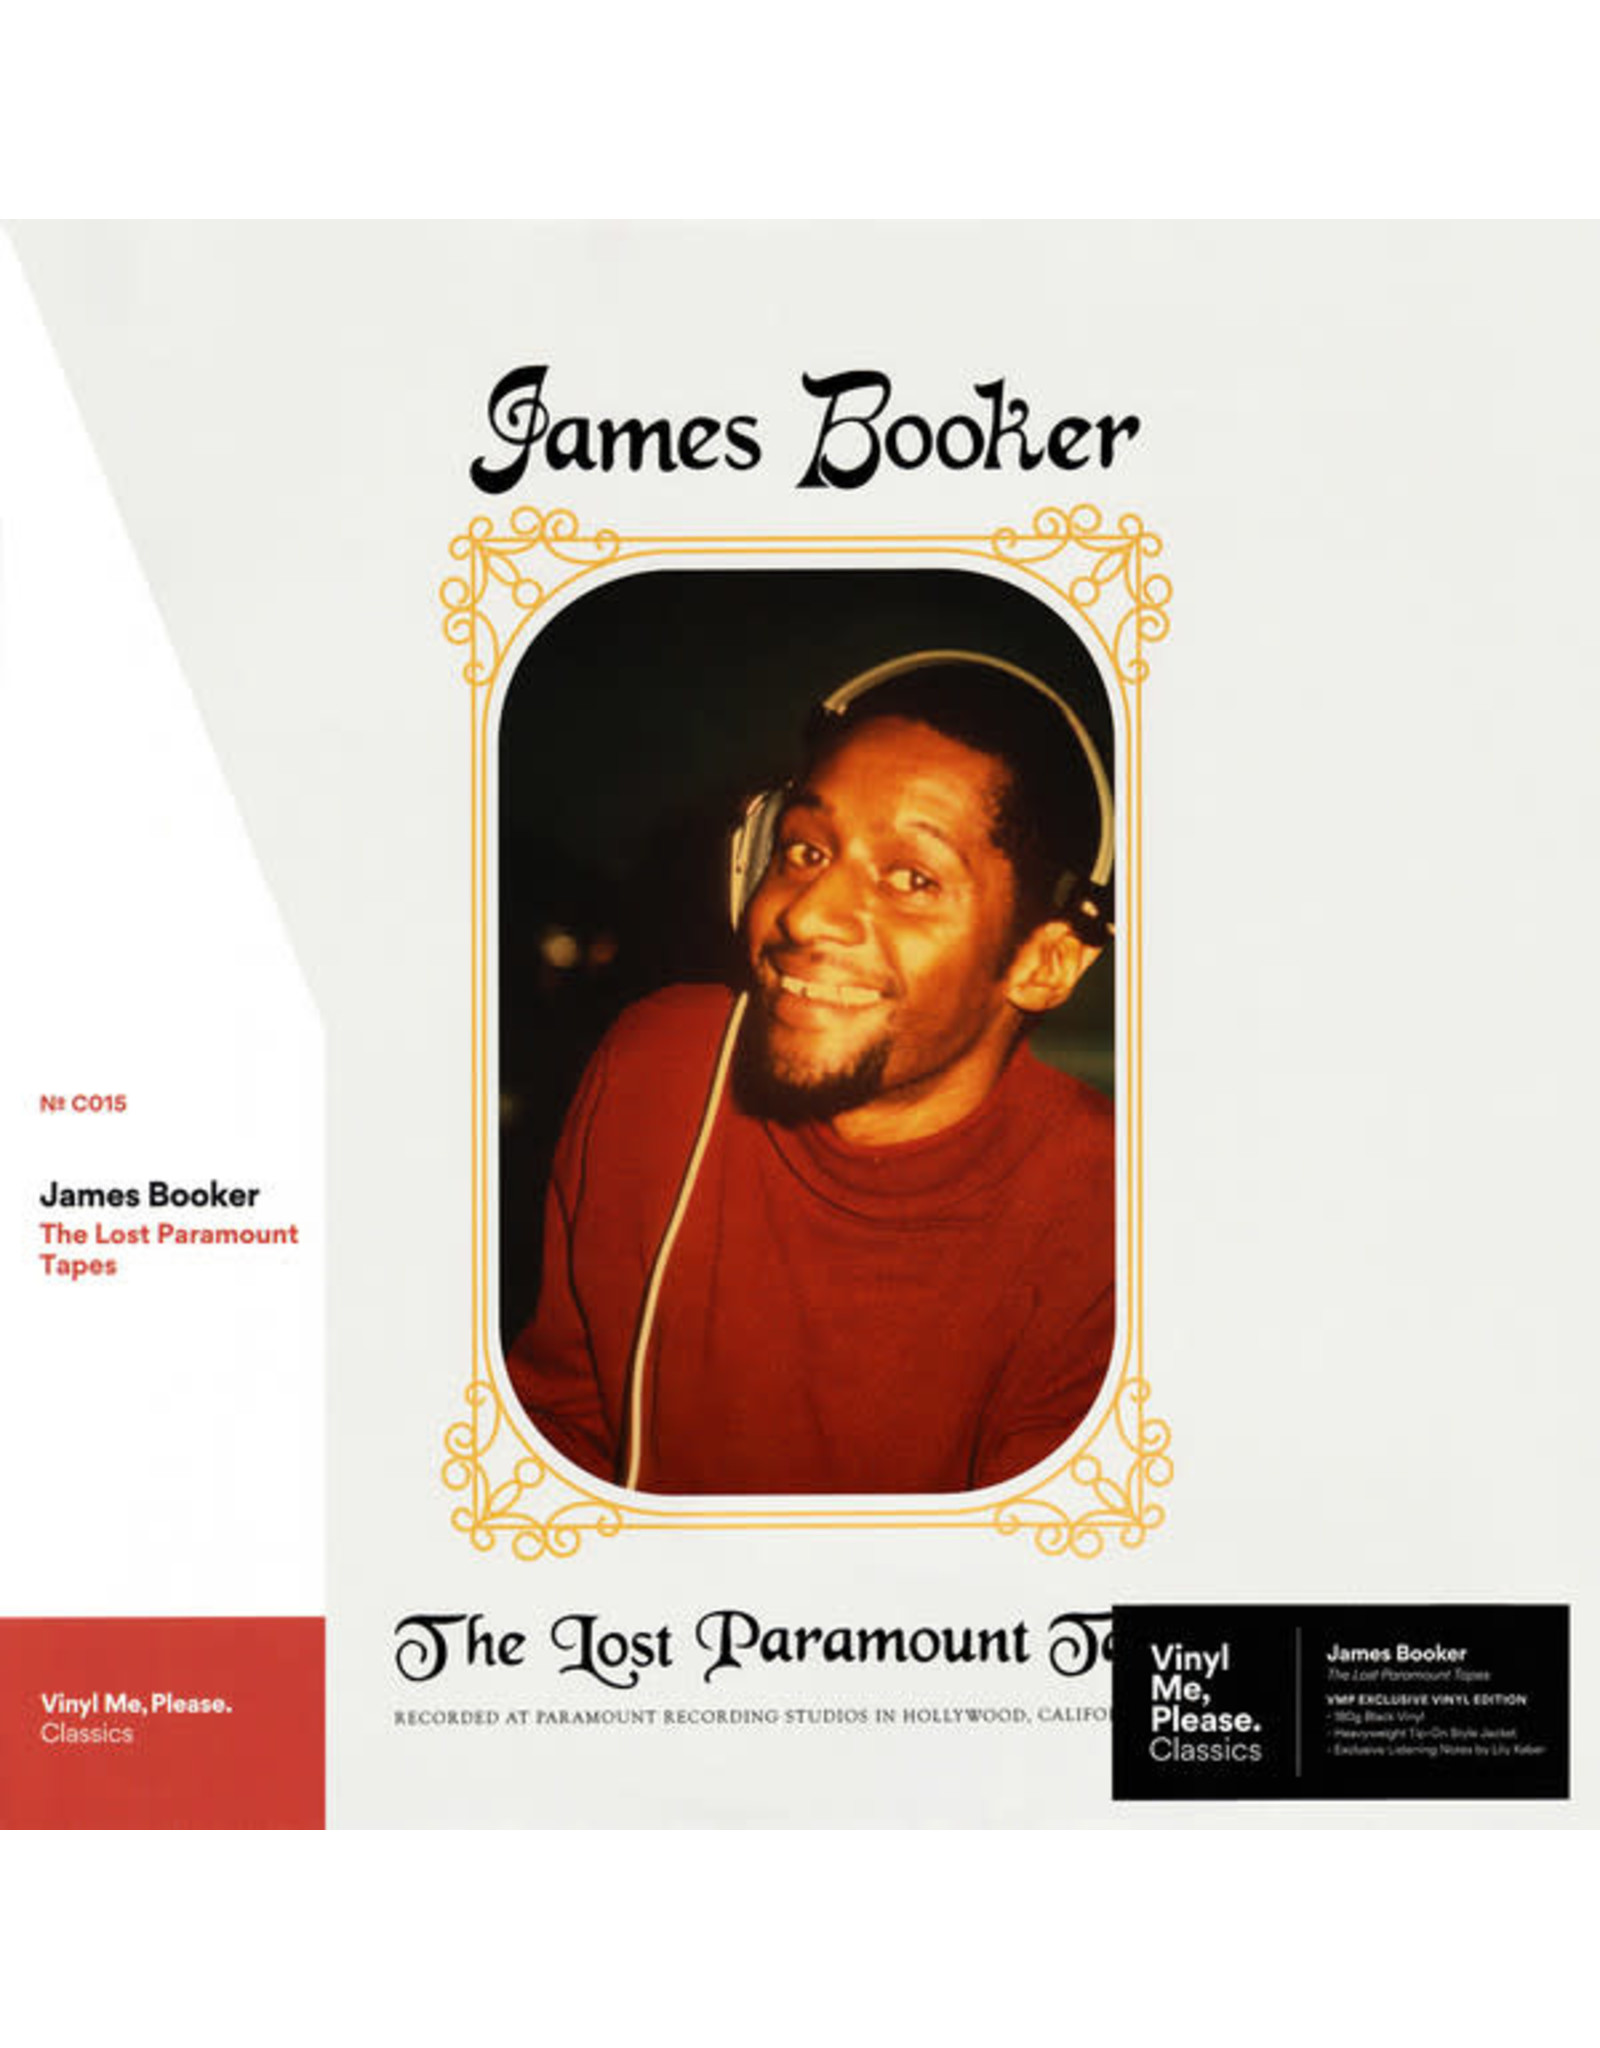 Booker, James - The Lost Paramount Tapes (Vinyl Me, Please) LP